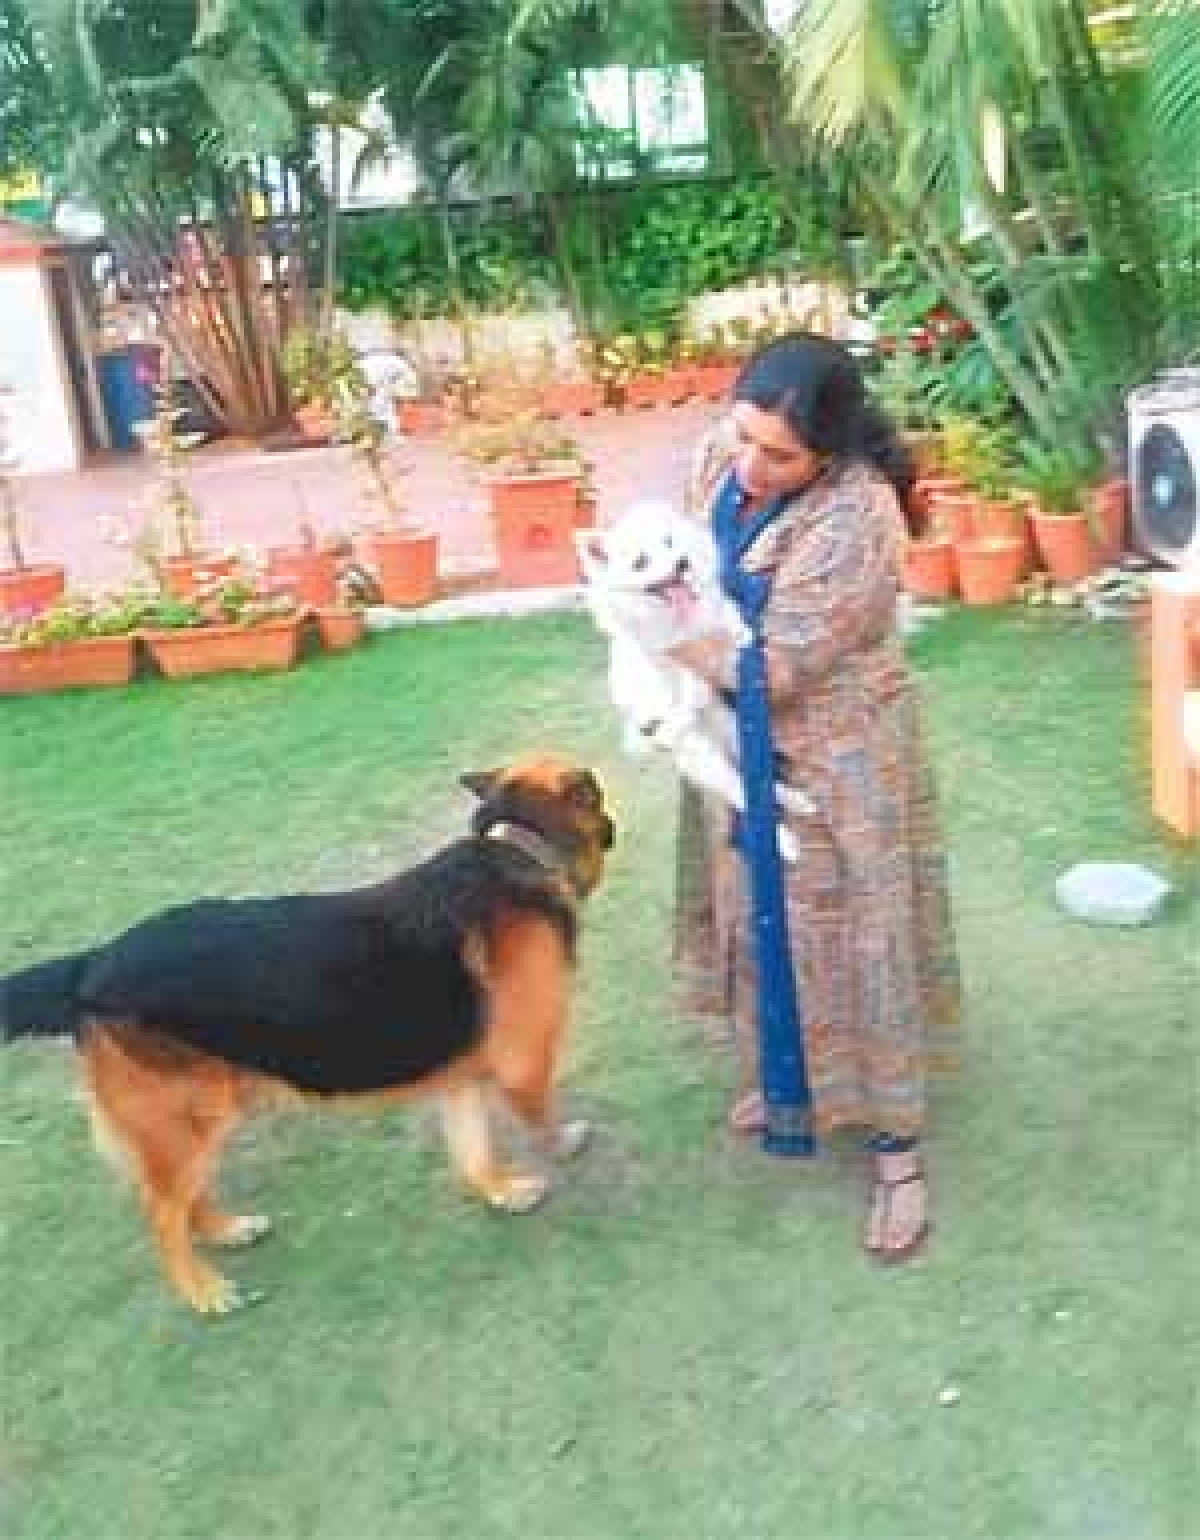 Indore: From parrot talk to rescuing animals, Divya Gupta plays angel for them